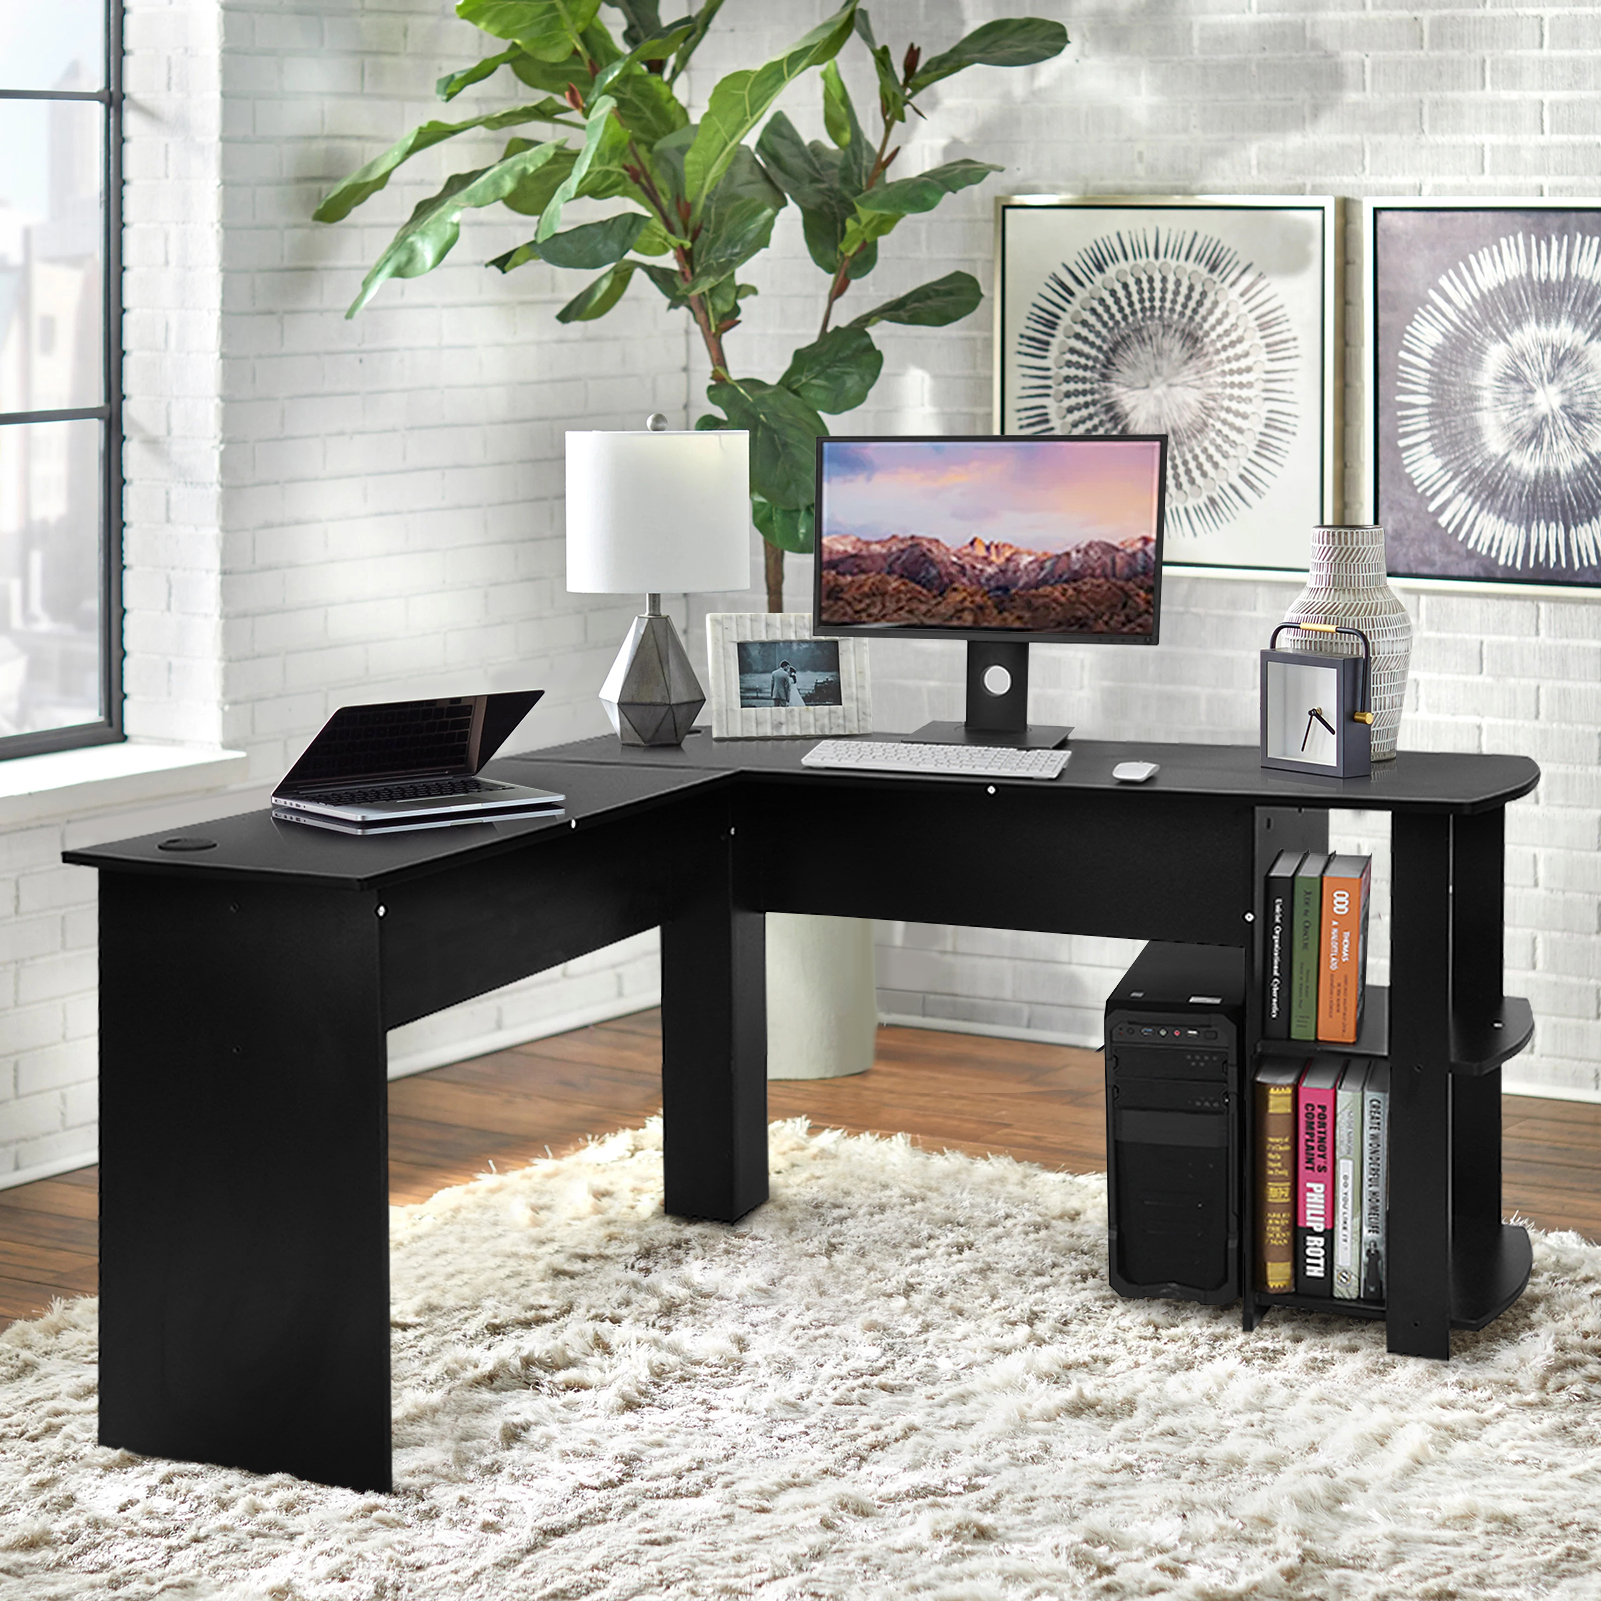 Utility Wooden Computer Desk Workstation L-Shaped Study Writing Desk Computer PC Laptop Table Workstation Dining Gaming Table